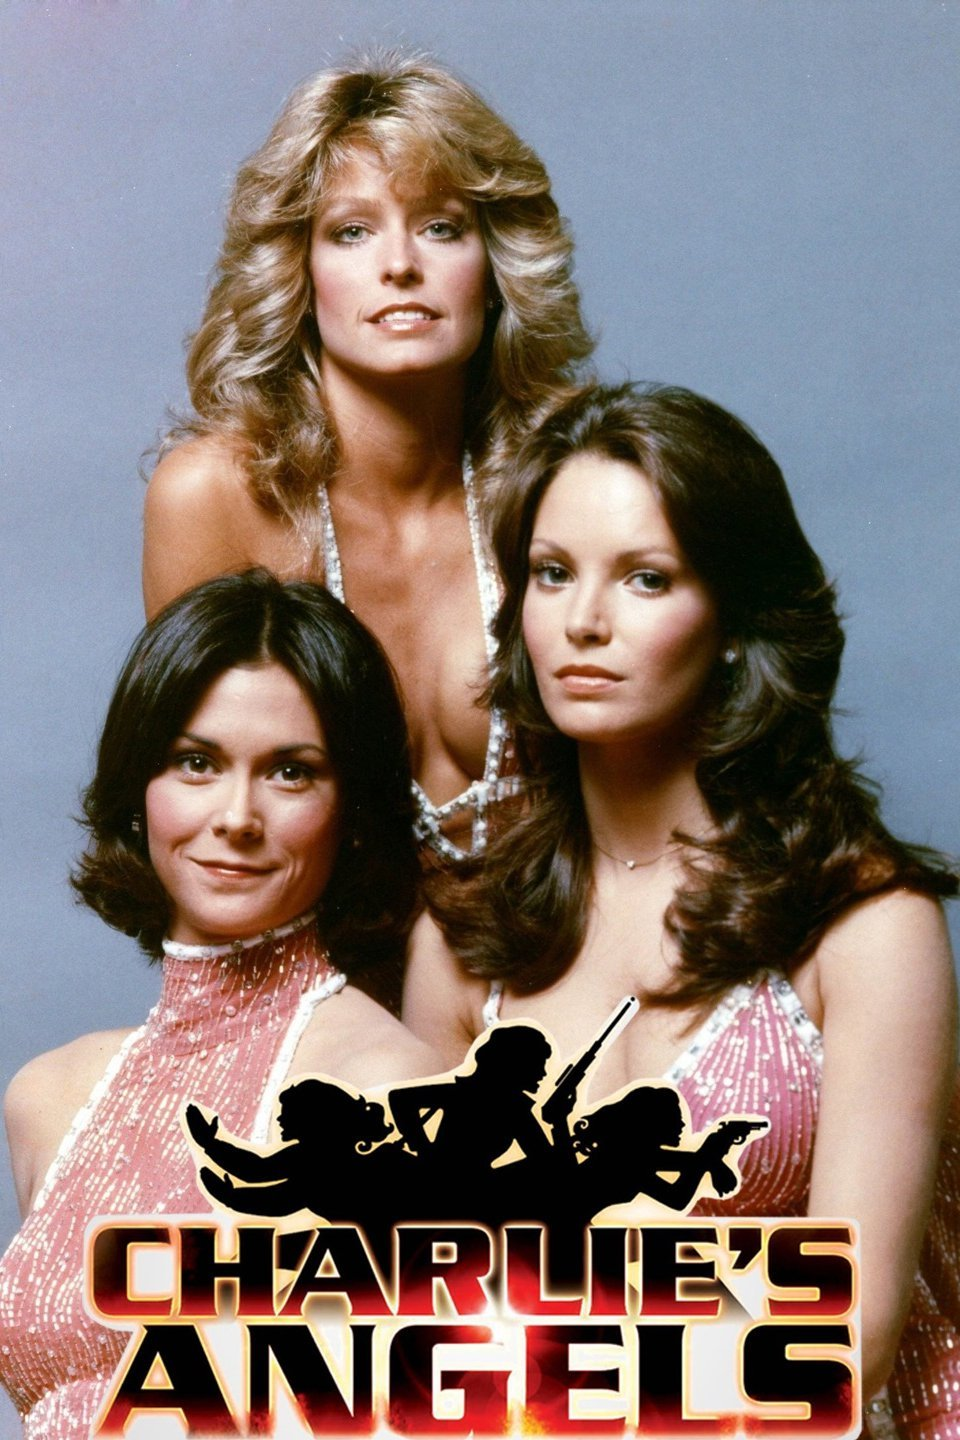 Charlie's Angels (1976 TV Series)